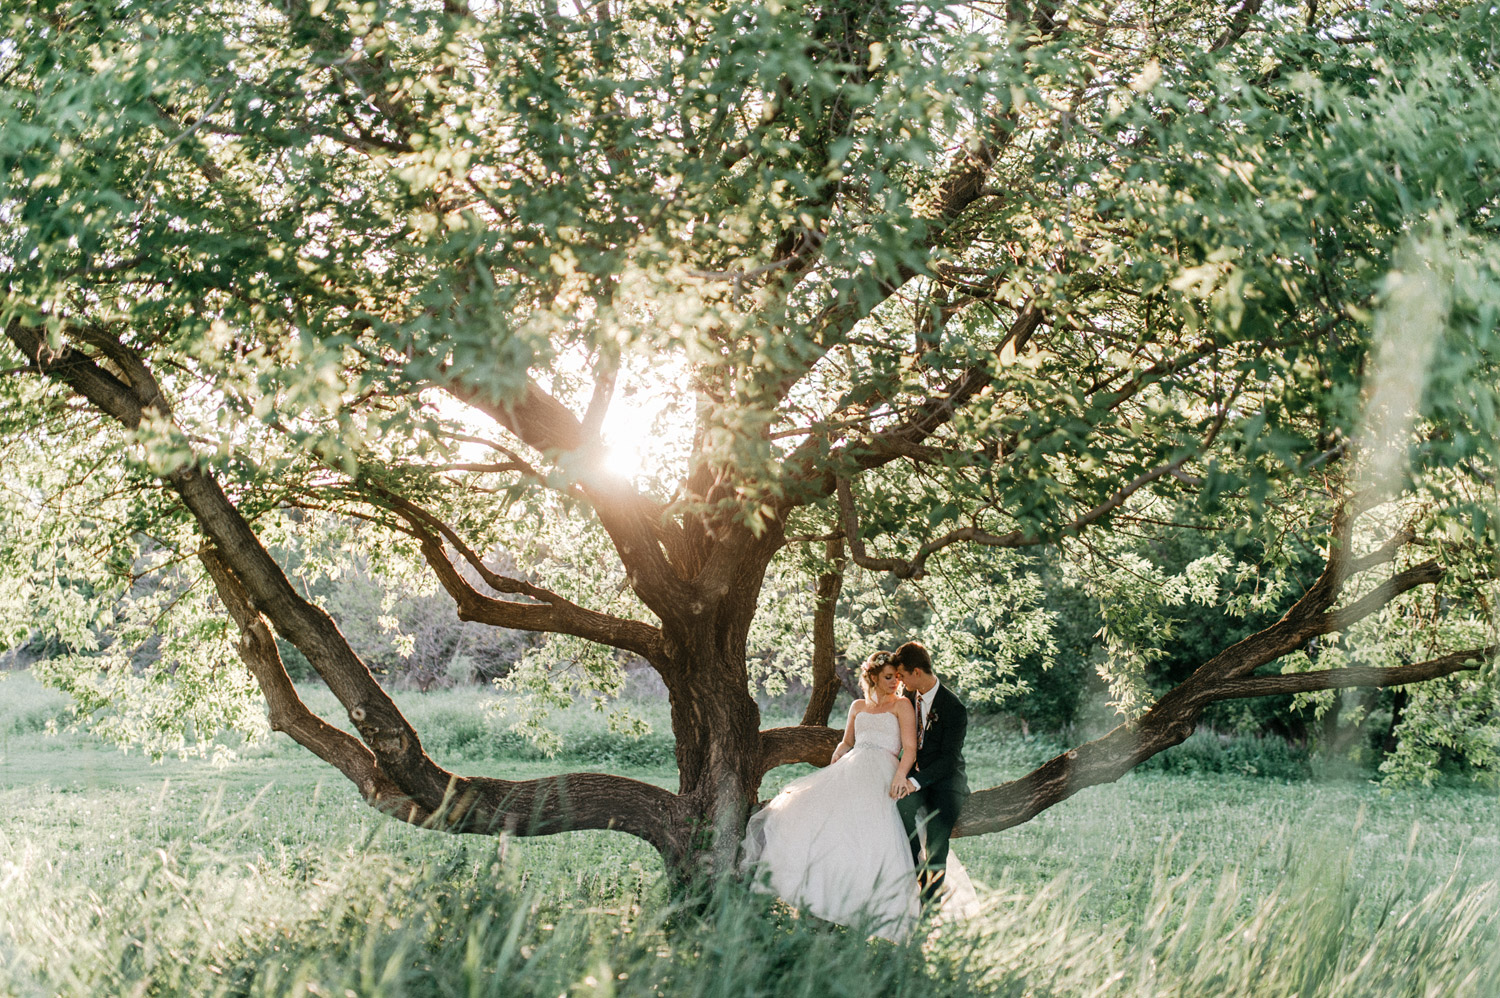 Creative sunset wedding portraits by geneoh photography